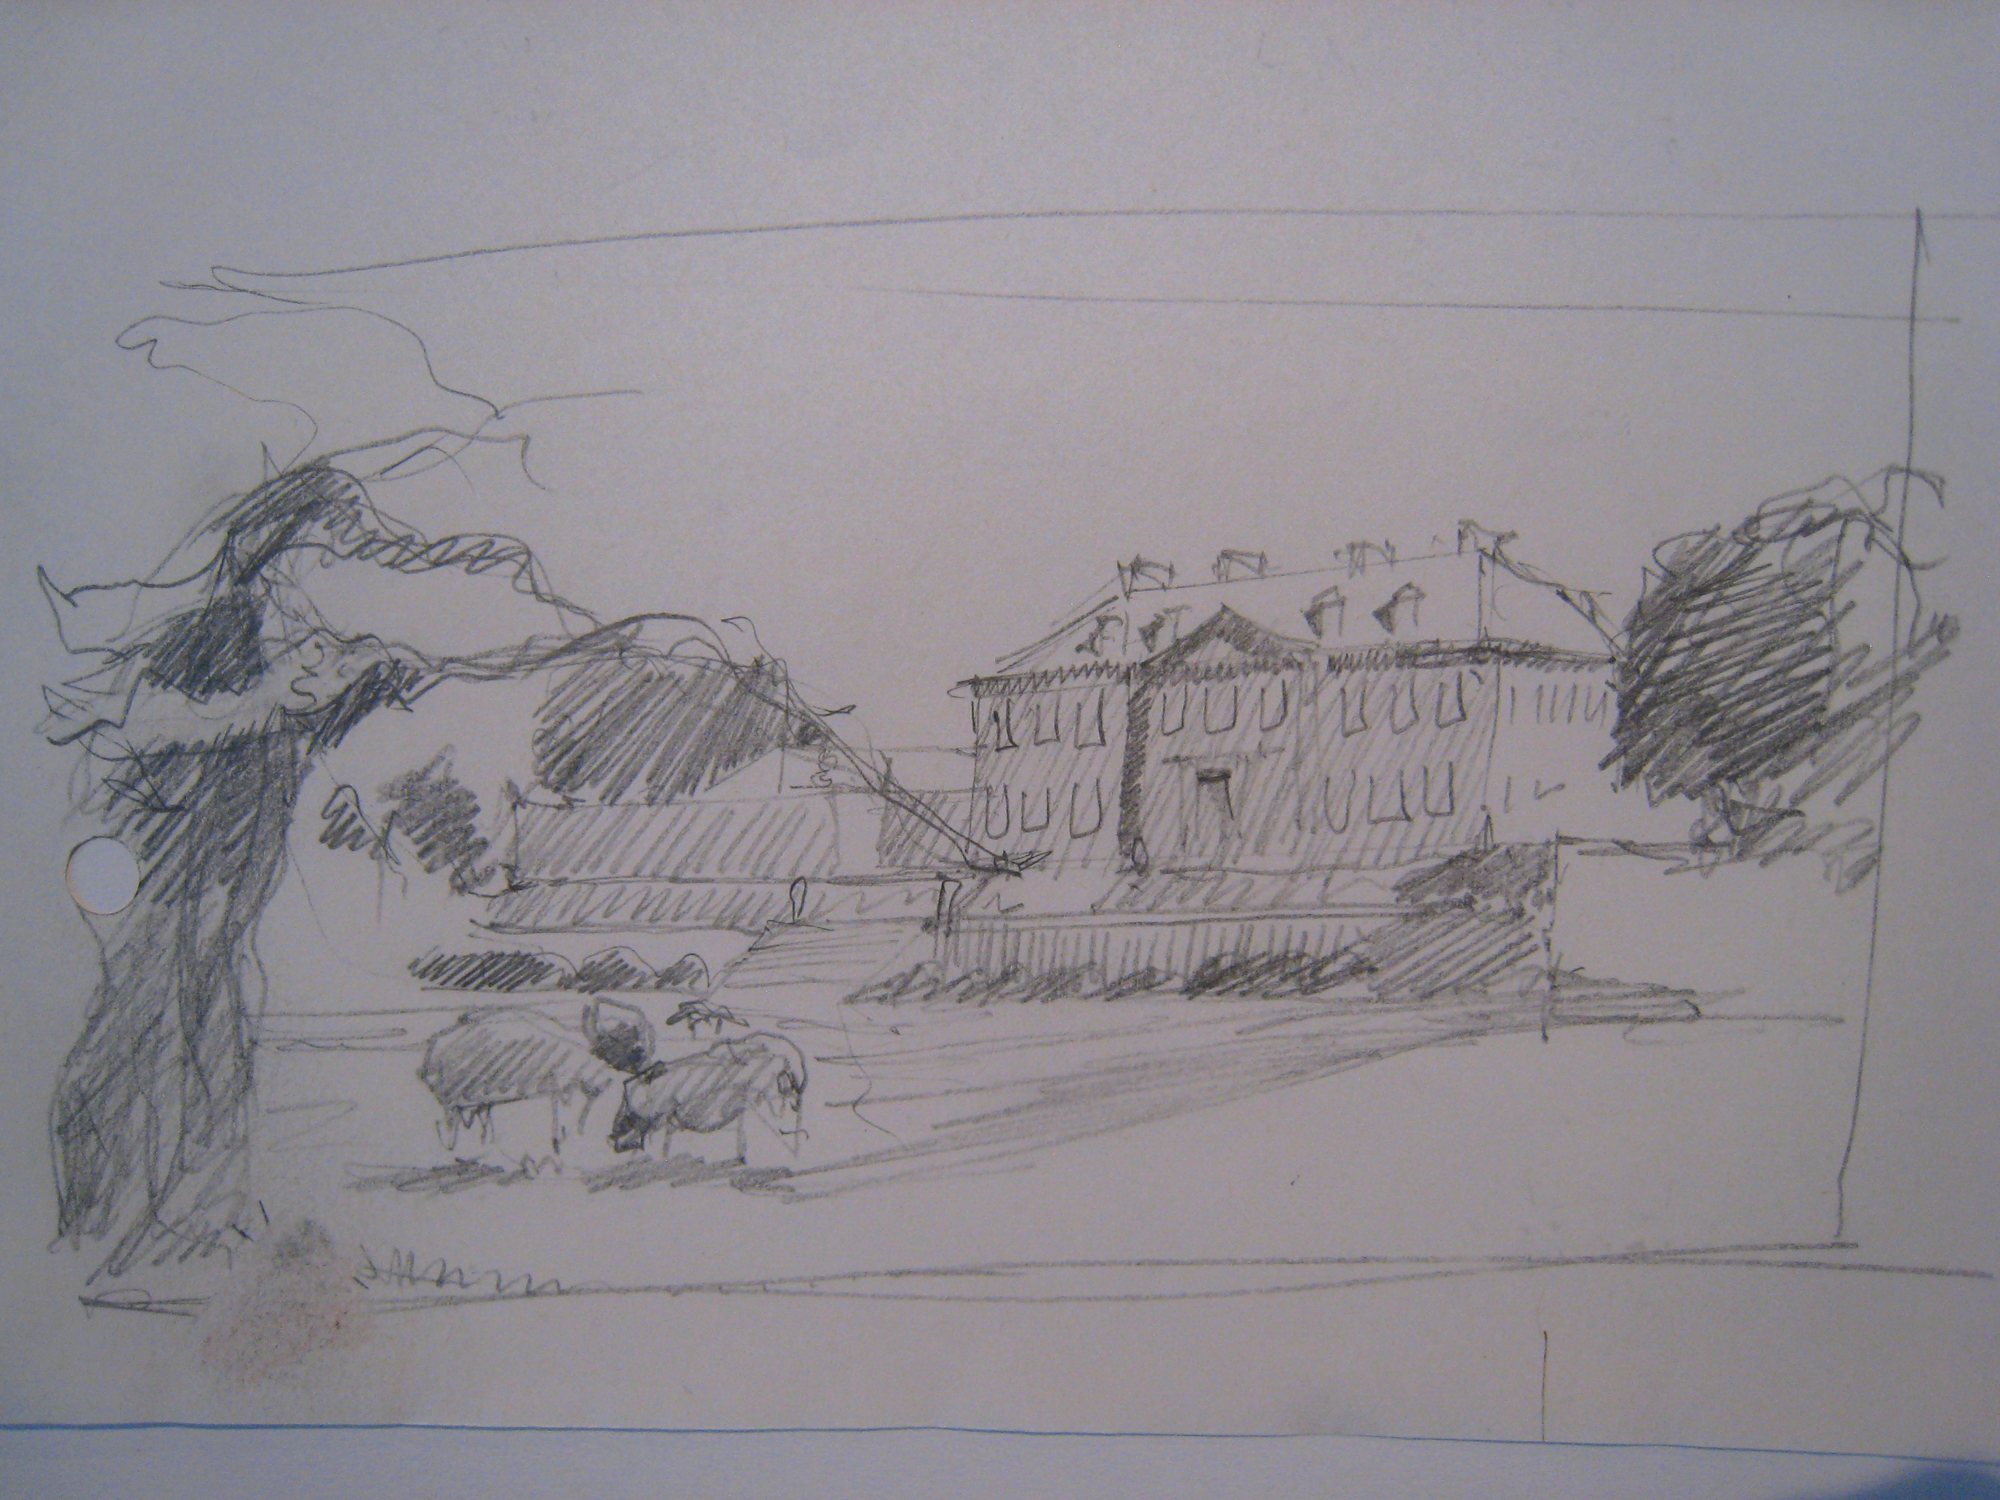 Antony House, Saltash, Cornwall, NT: early sketch